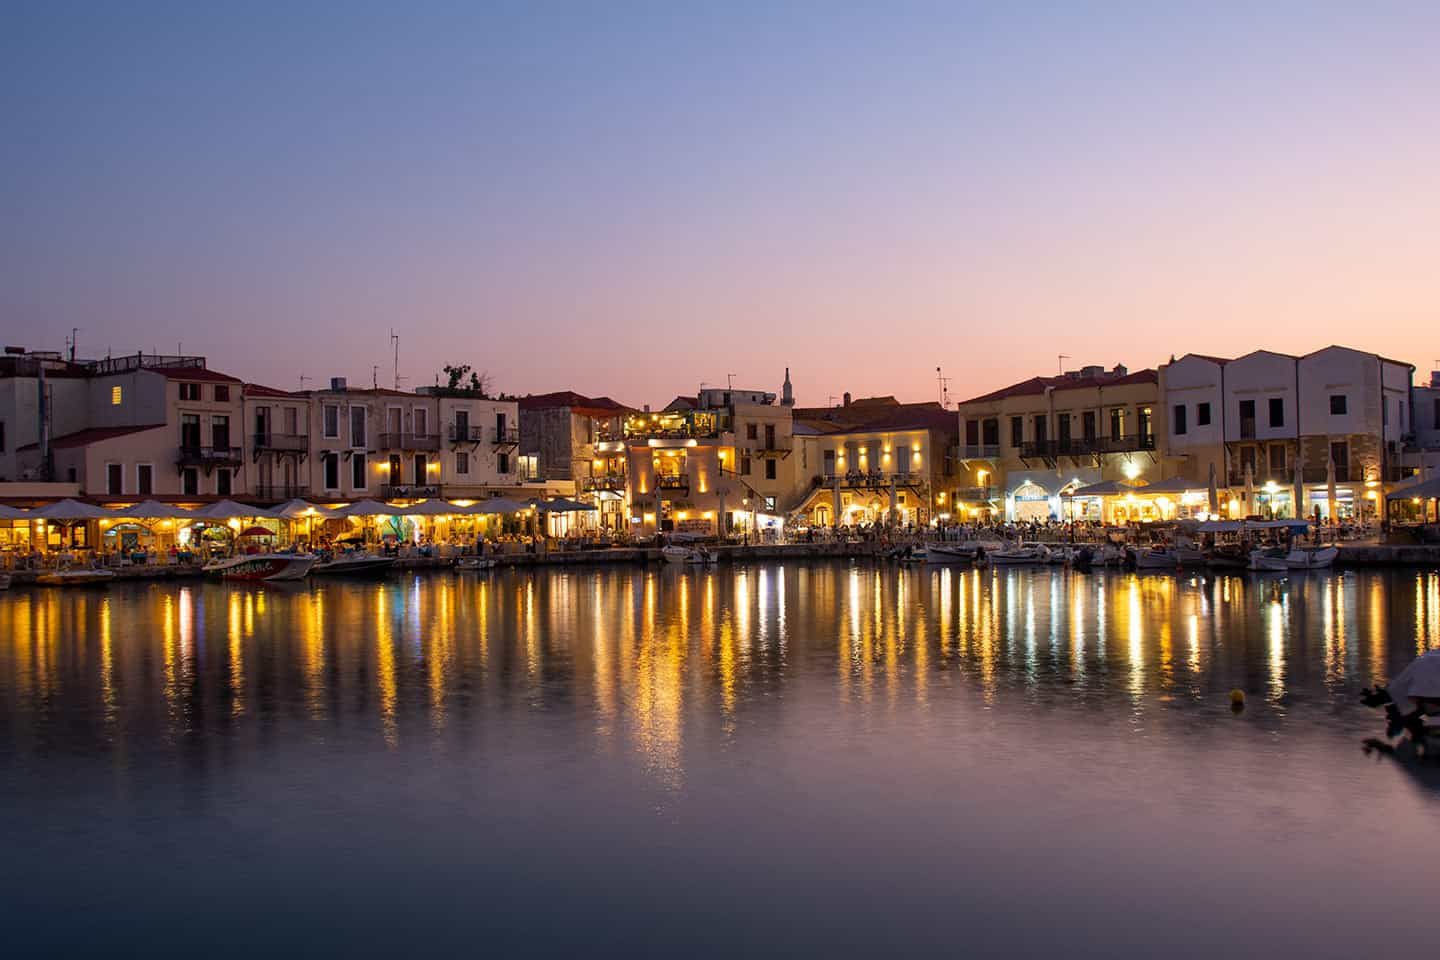 Image of the Venetian harbour in Rethymno old town at dusk